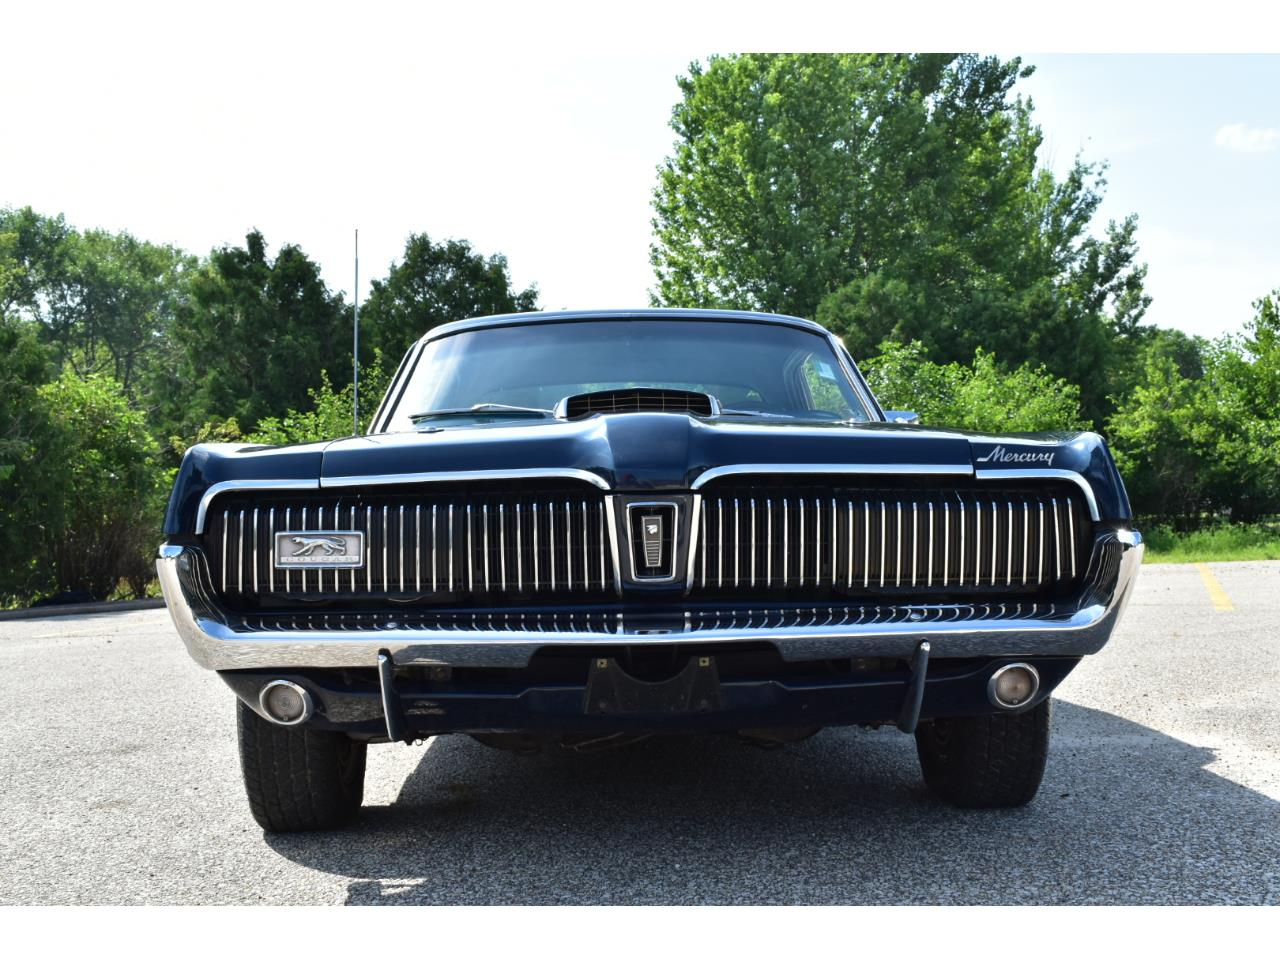 Large Picture of 1967 Mercury Cougar located in Iowa - $18,995.00 Offered by Coyote Classics - Q9AO